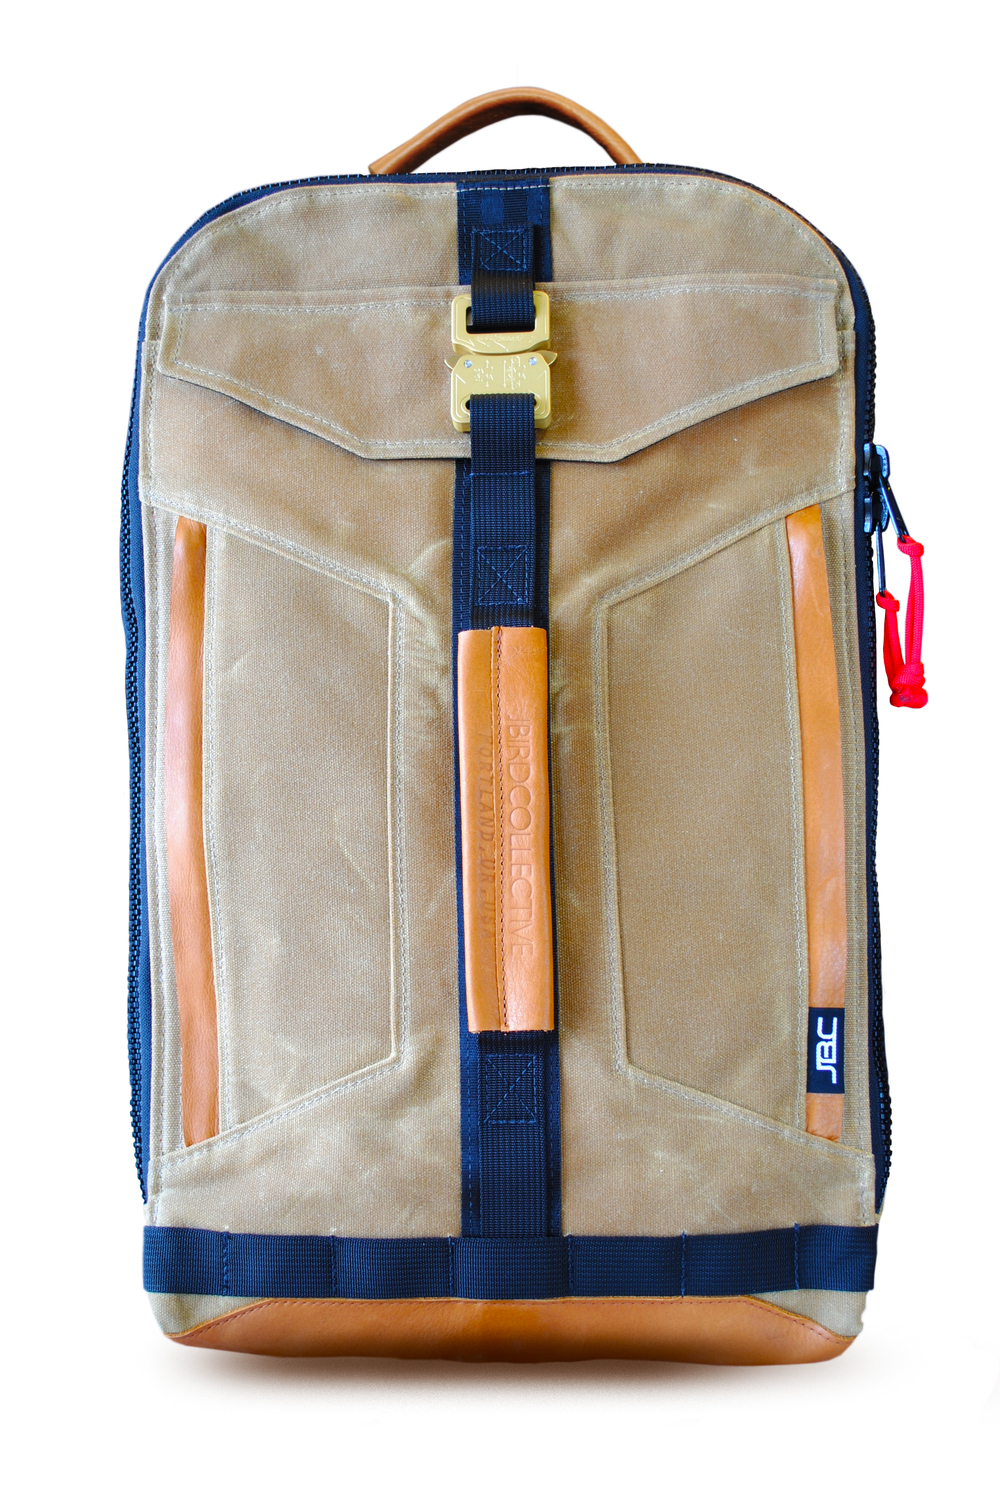 Jbird Collective: The Techpack           This pack dares you to ride your motorcycle faster. Its 25liter interior allows you to throw a couple changes of clothes, an extra pair of shoes, a large nalgene and your toiletries without disorganizing your pens, notebooks, laptop and power cords.                                                Its Cobra buckle is manufactured using the highest grade aluminum alloy, brass and steel. They do not corrode, jam, crack or malfunction.             Made in Oregon                        $280                  jbirdcollective.com